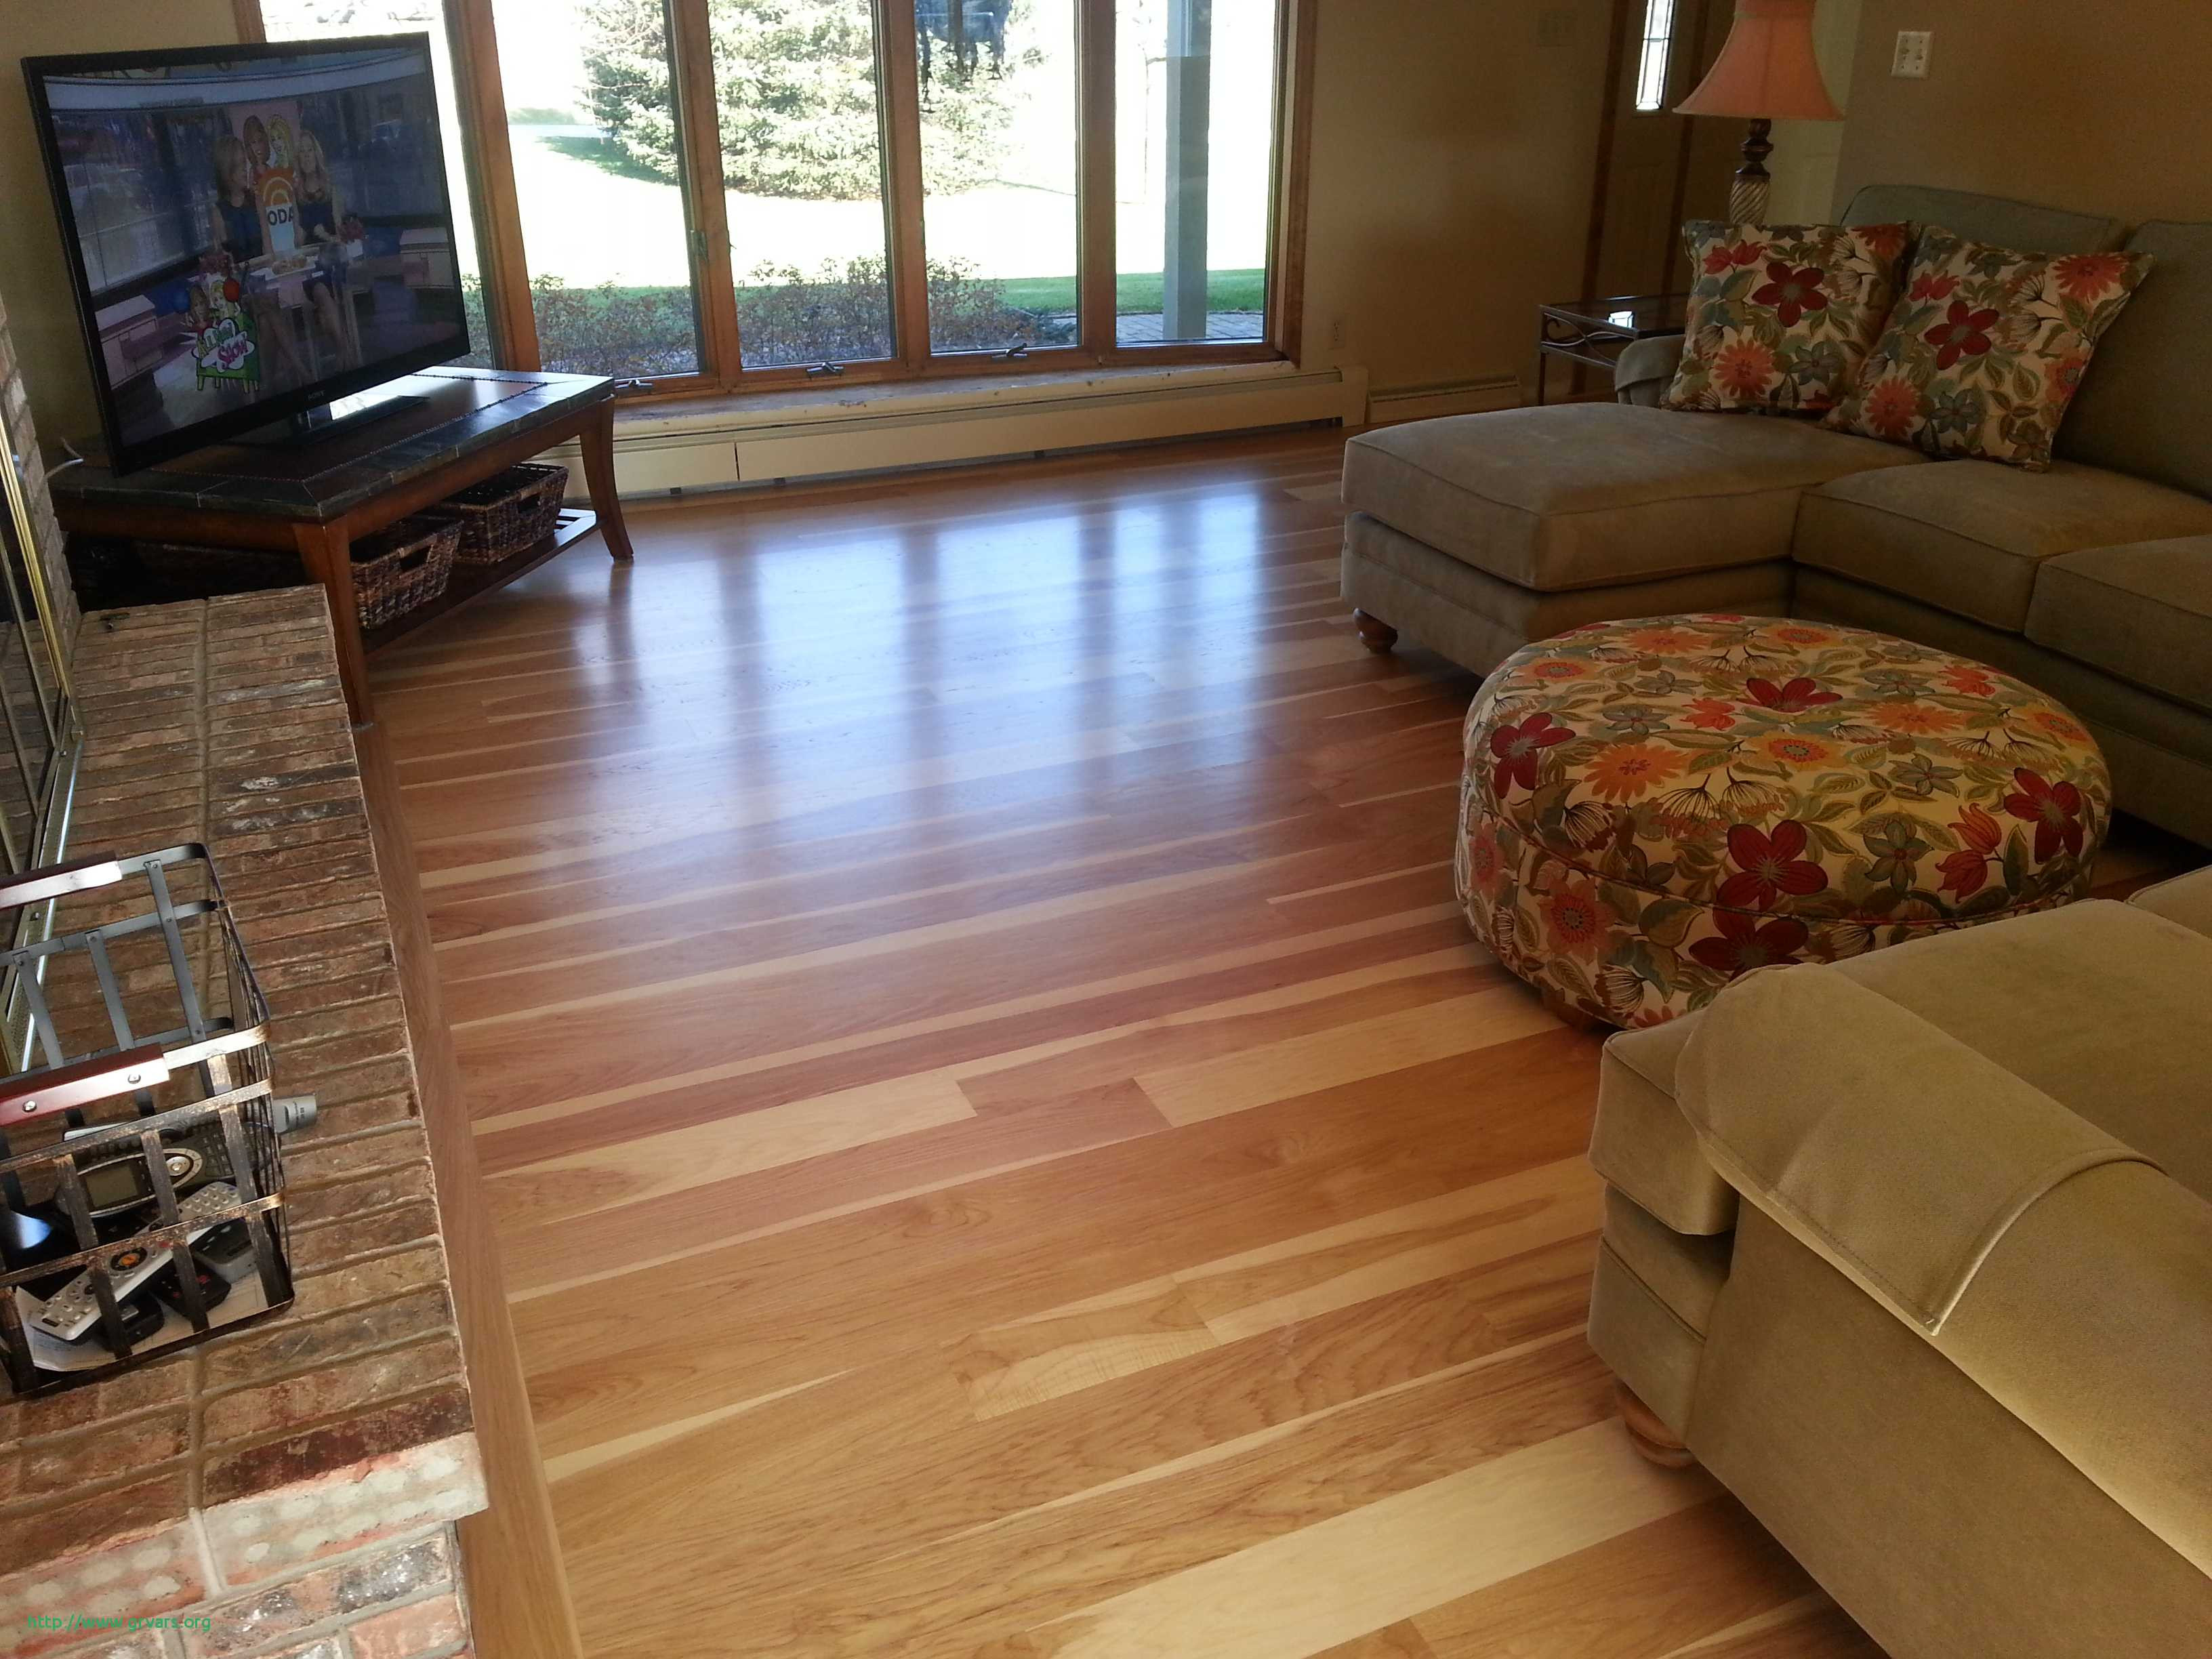 hardwood flooring durham region of 16 charmant step by step hardwood floor installation ideas blog inside custom hickory wide plank hardwood floor miwlaukee wi